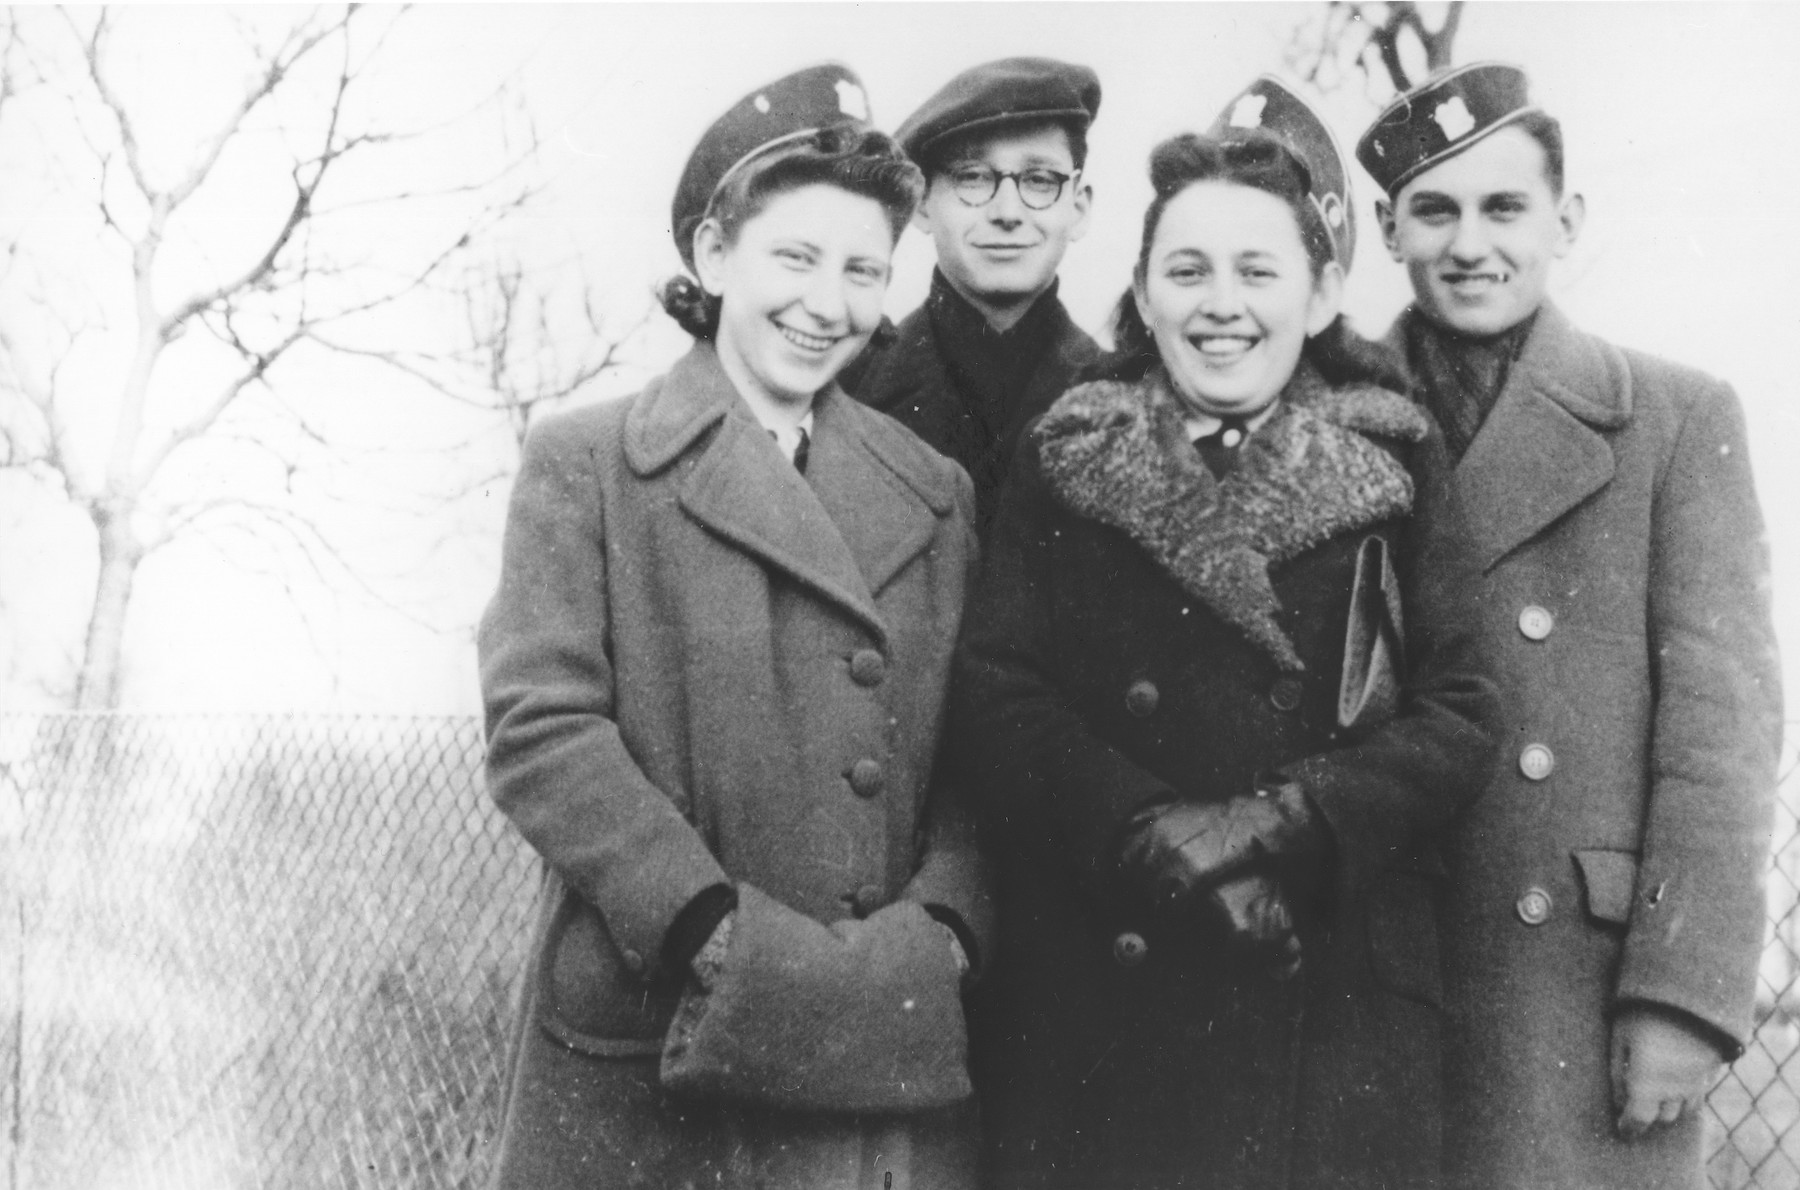 Four students from the Hebrew gymnasium in Mukachevo pose wearing their school caps.  Pictured from left to right are: Miriam Katz, Eva Braun and Bela Grunbaum.